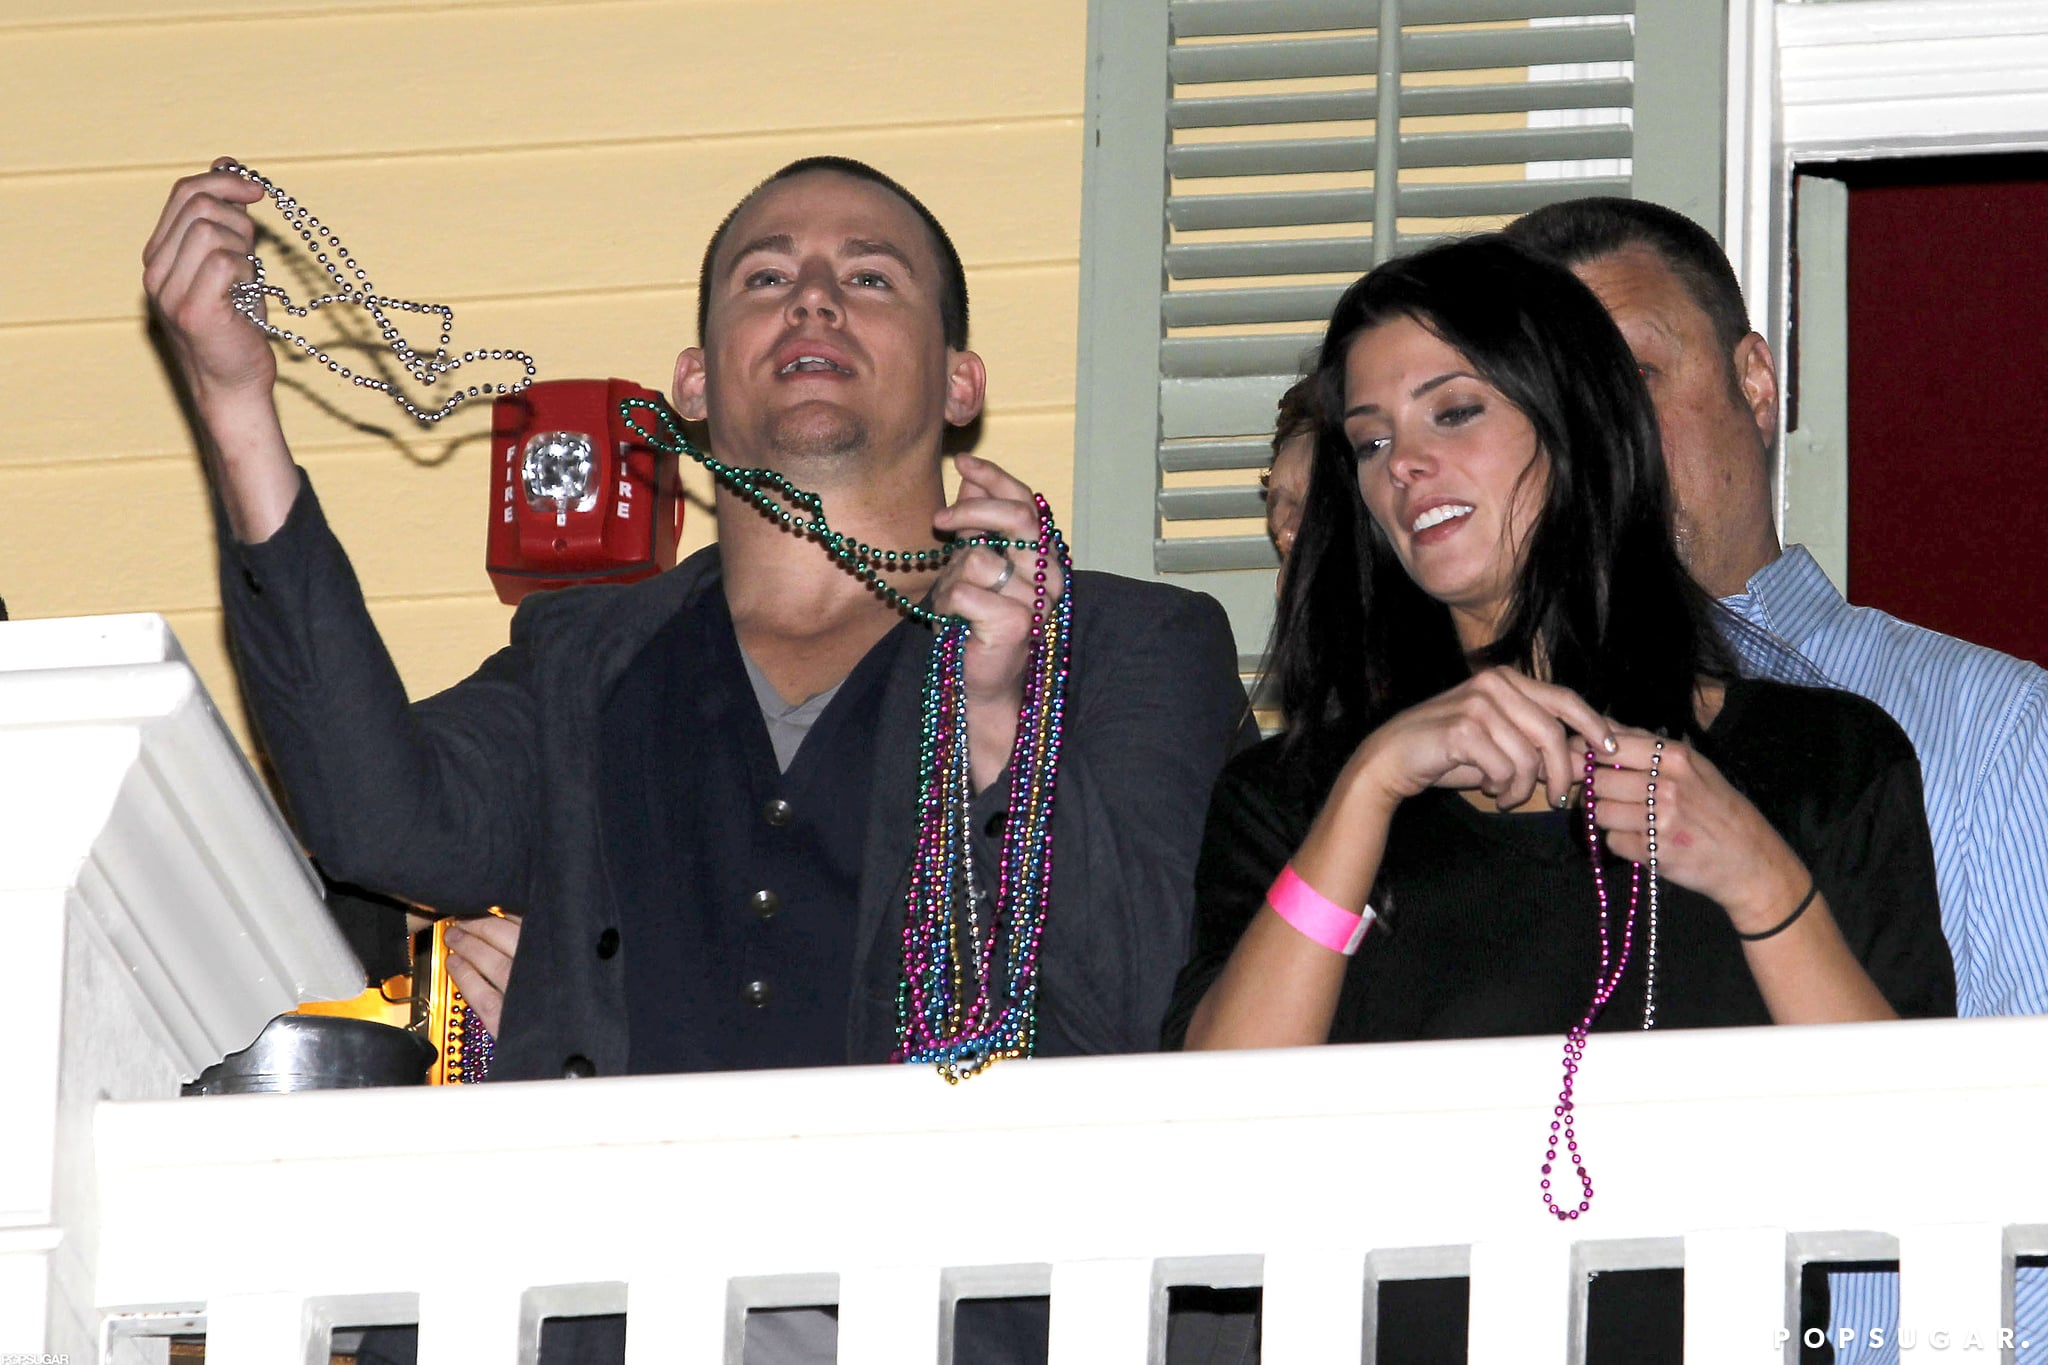 Channing Tatum Celebrates the Super Bowl With Beads and Buddies